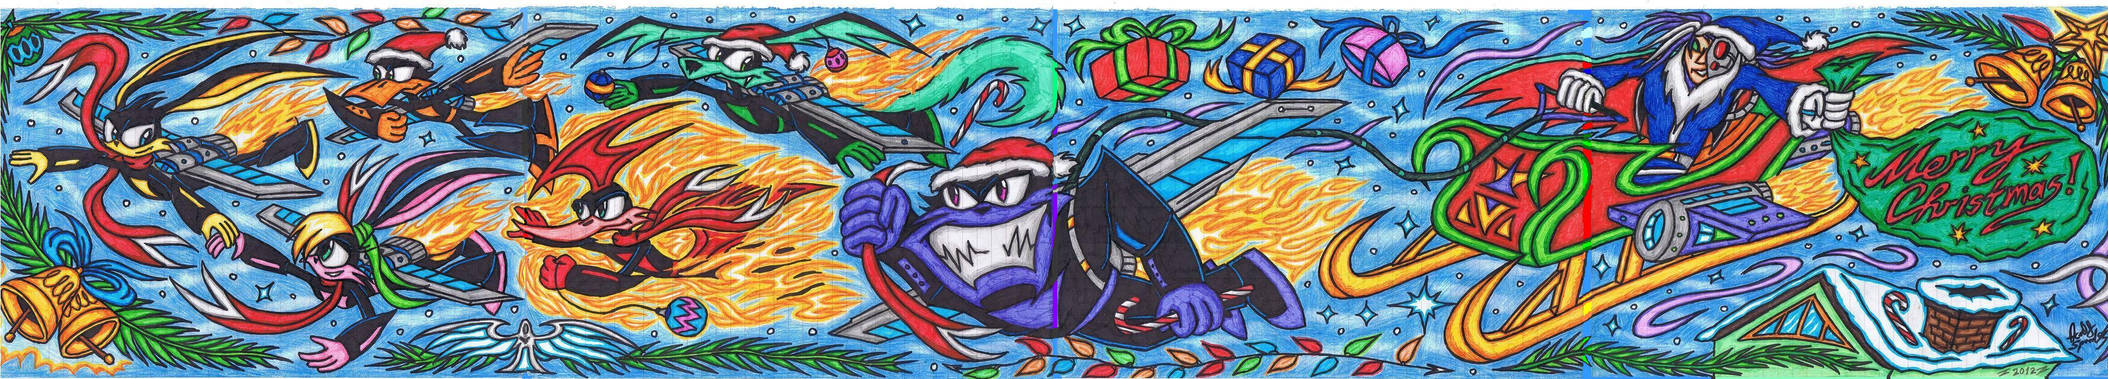 Loonatics Unleashed - Merry Christmas 2012!